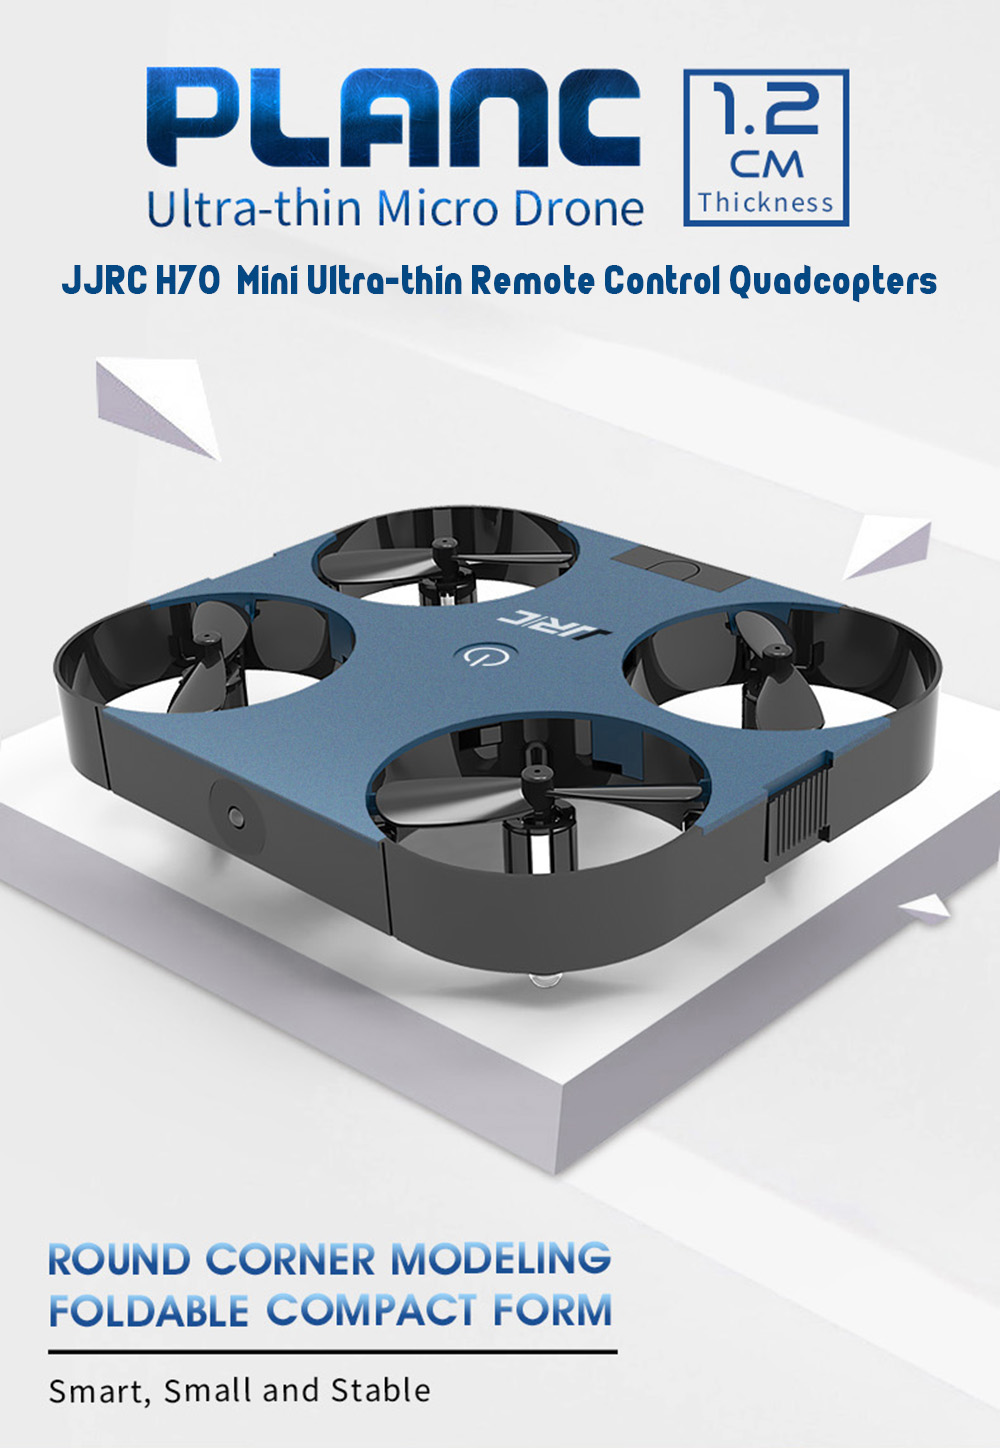 We offer great quantity of top quality jjrc h68 drone and spare parts with! JJRC H70 Mini Ultra-thin Remote Control Quadcopters - Red